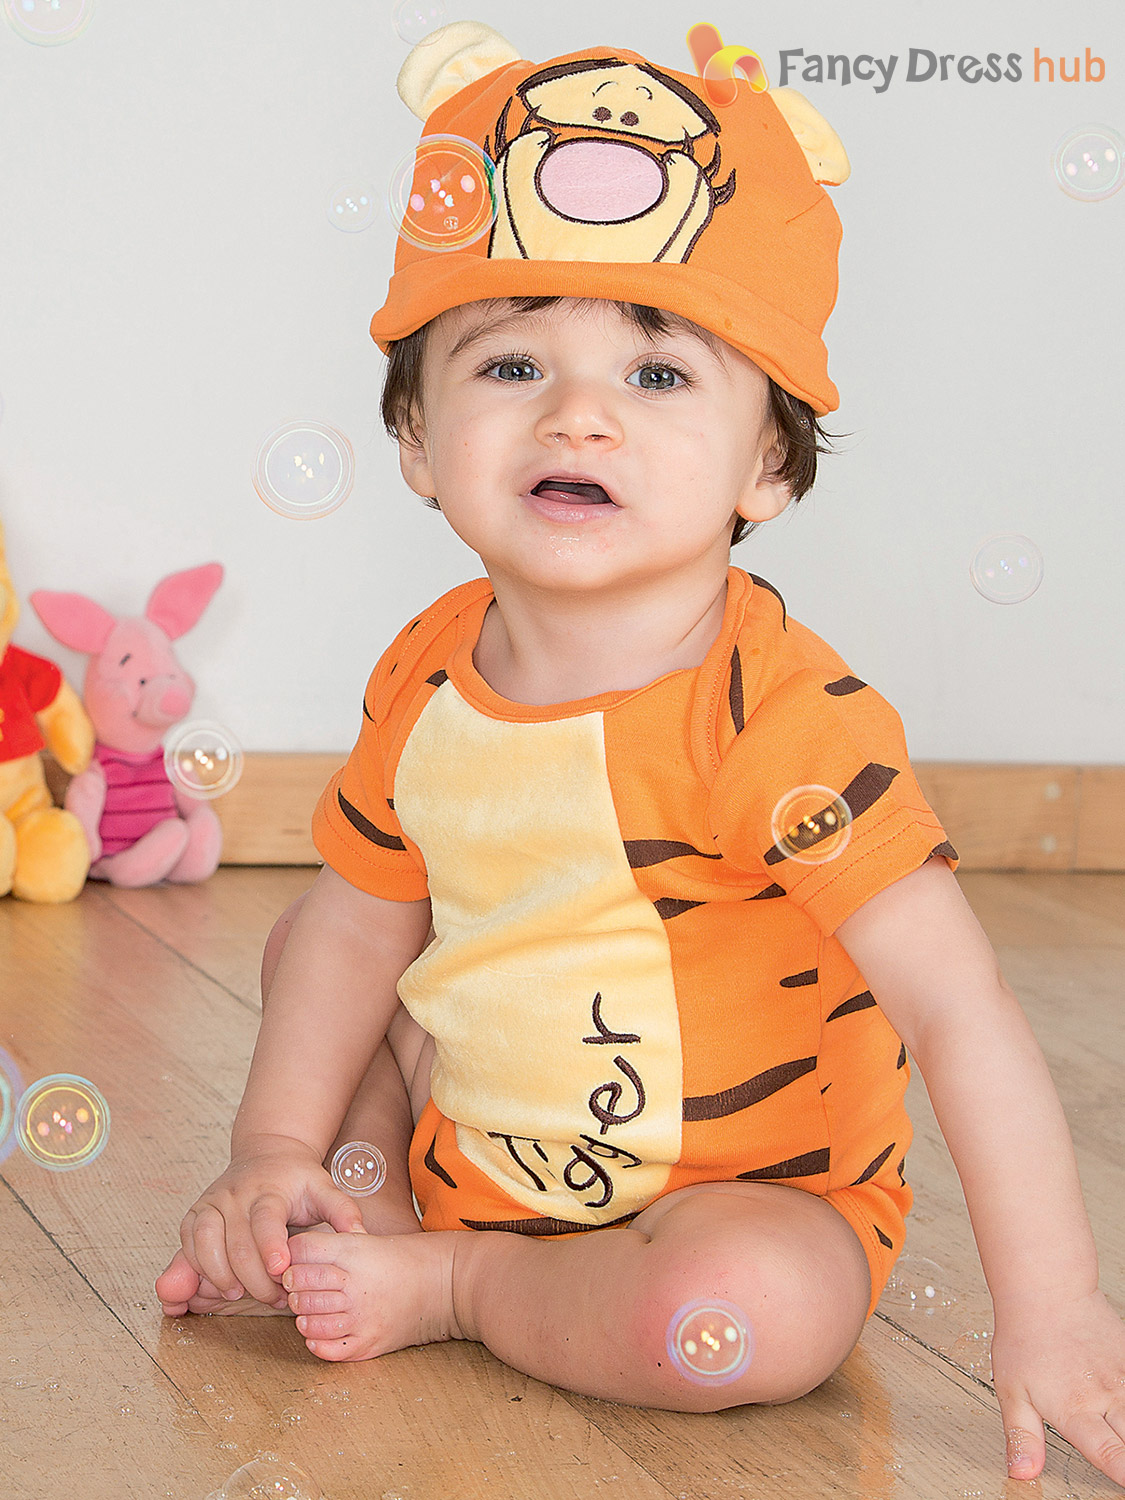 Disney-Baby-Winnie-the-Pooh-Bodysuit-Hood-Outfit-Toddler-Fancy-Dress-Costume thumbnail 4